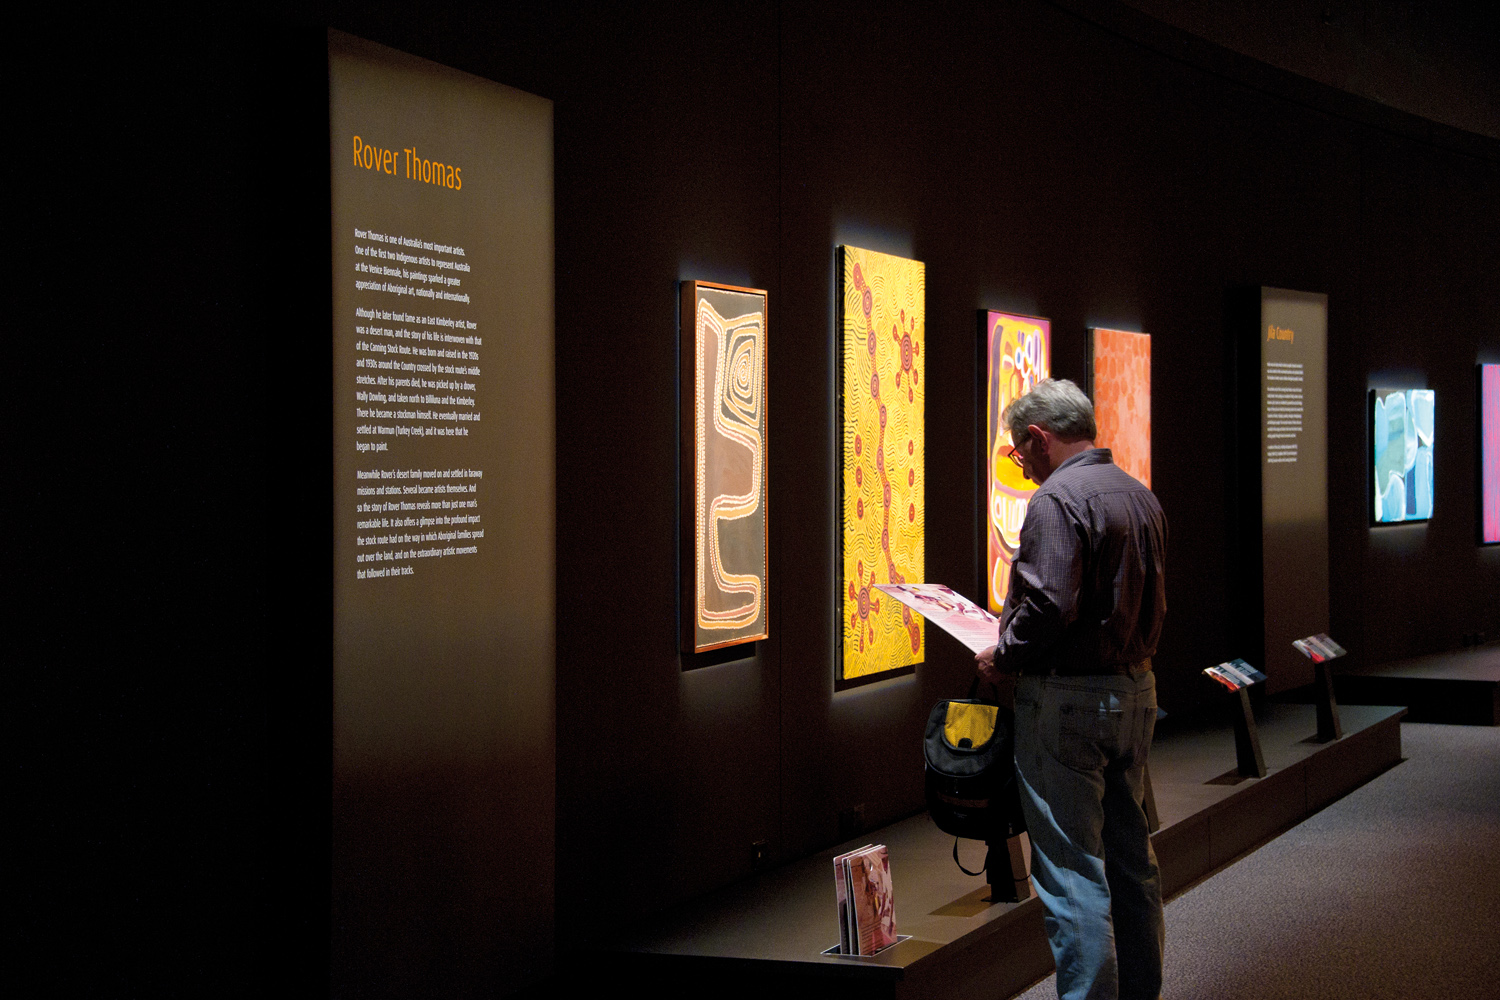 After intensive consultation, this exhibition was developed for both the National Museum of Australia and as a touring exhibition.